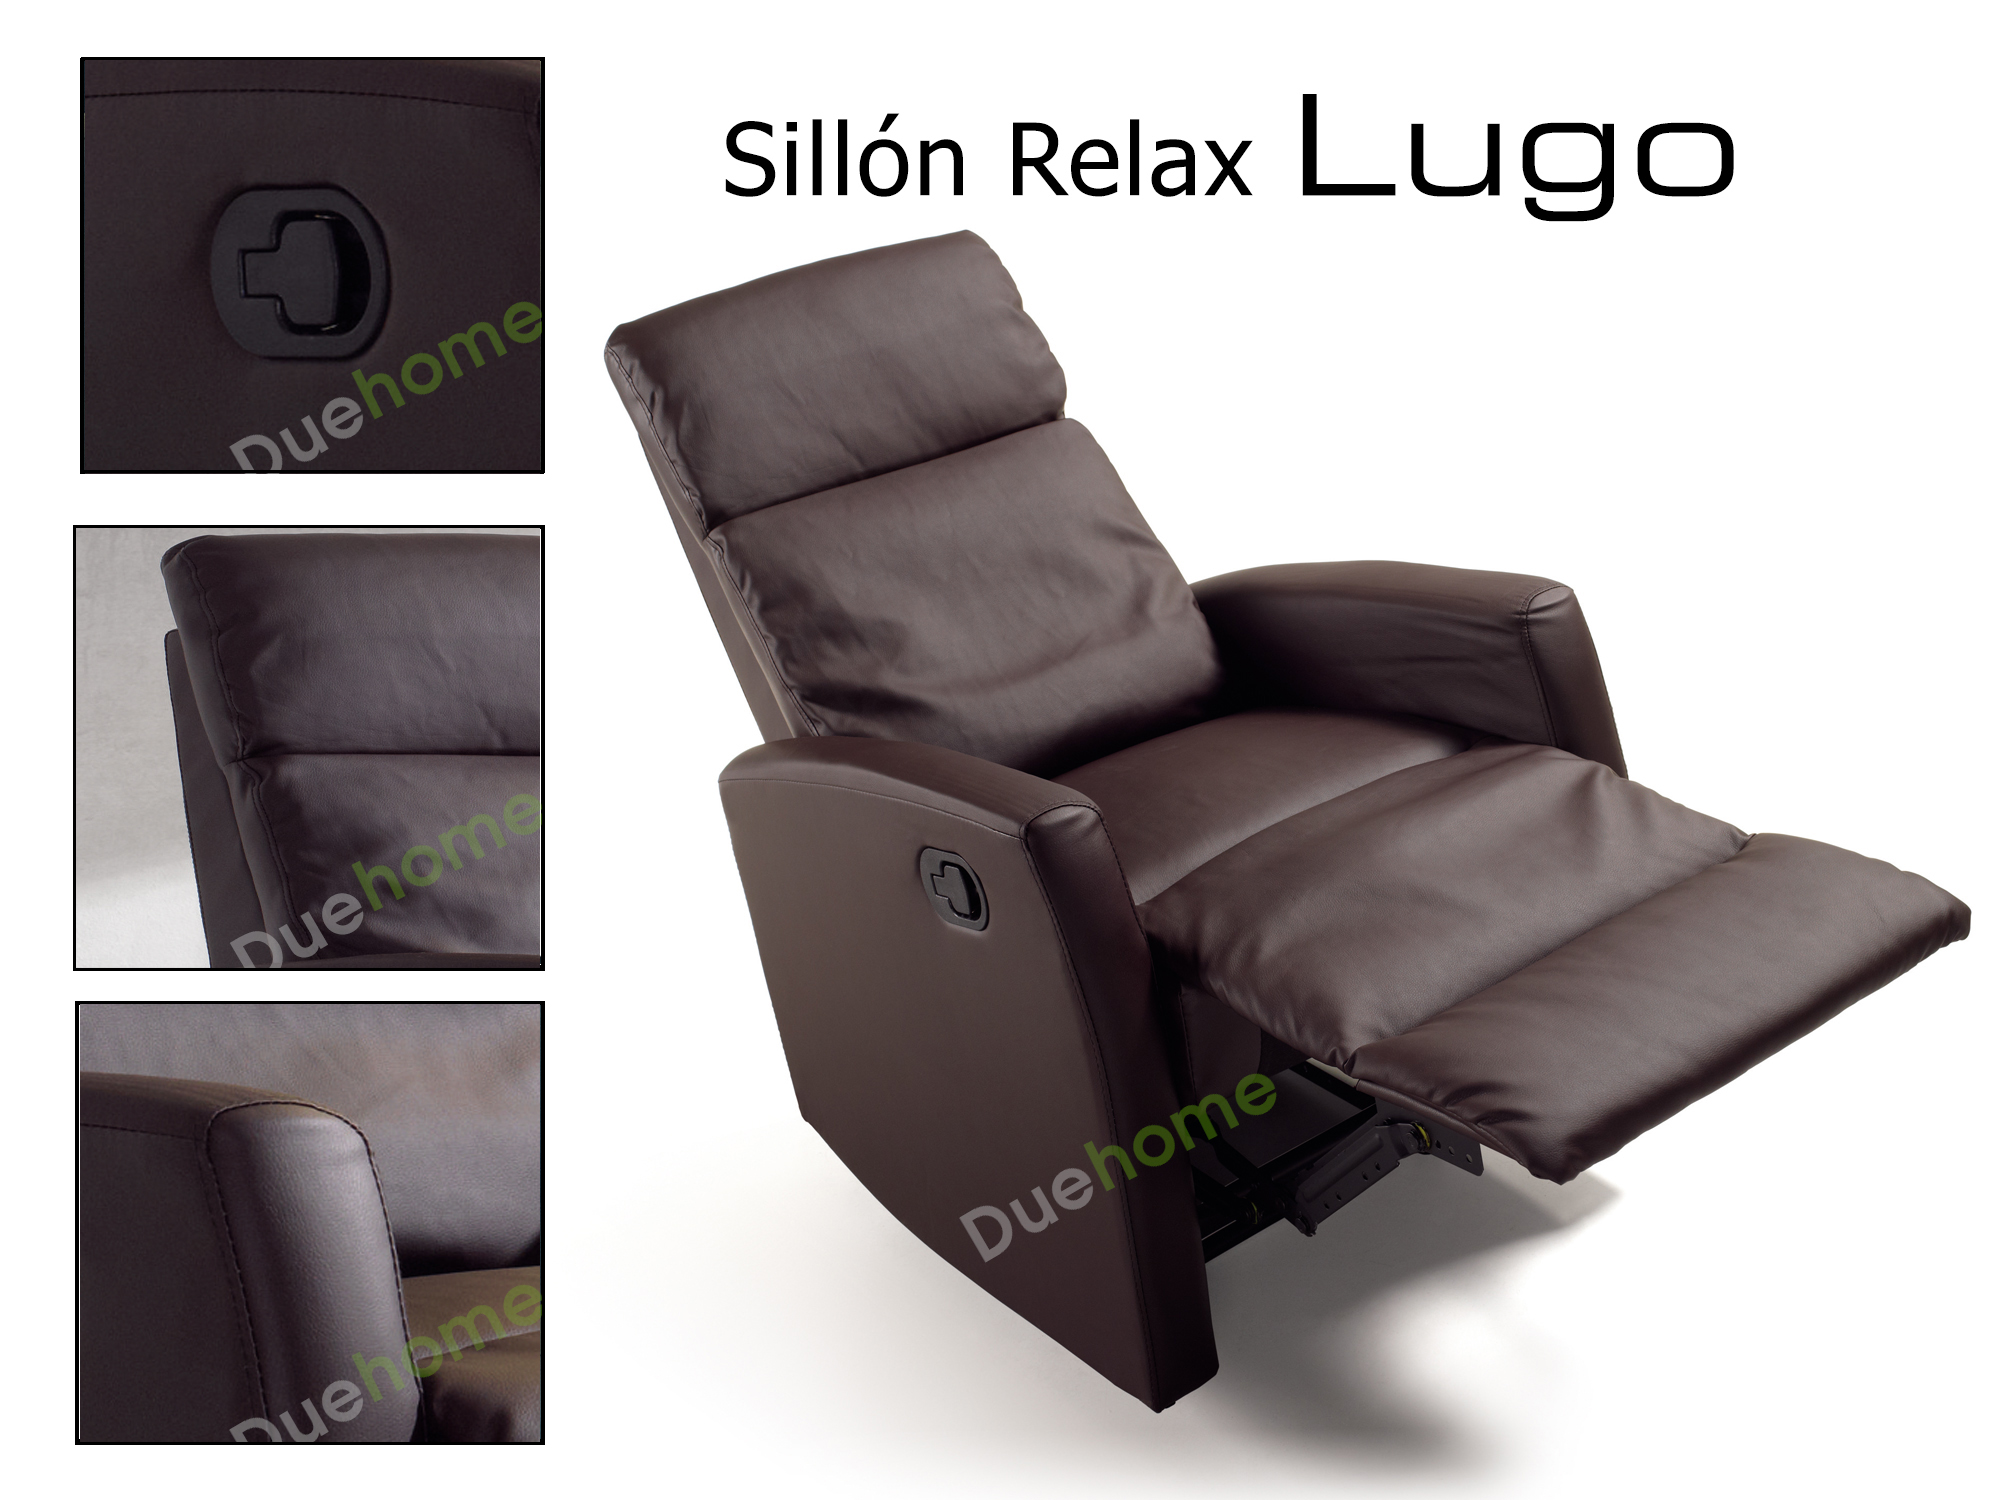 Sillones Reclinables De Relax Sillon Reclinable Sharemedoc